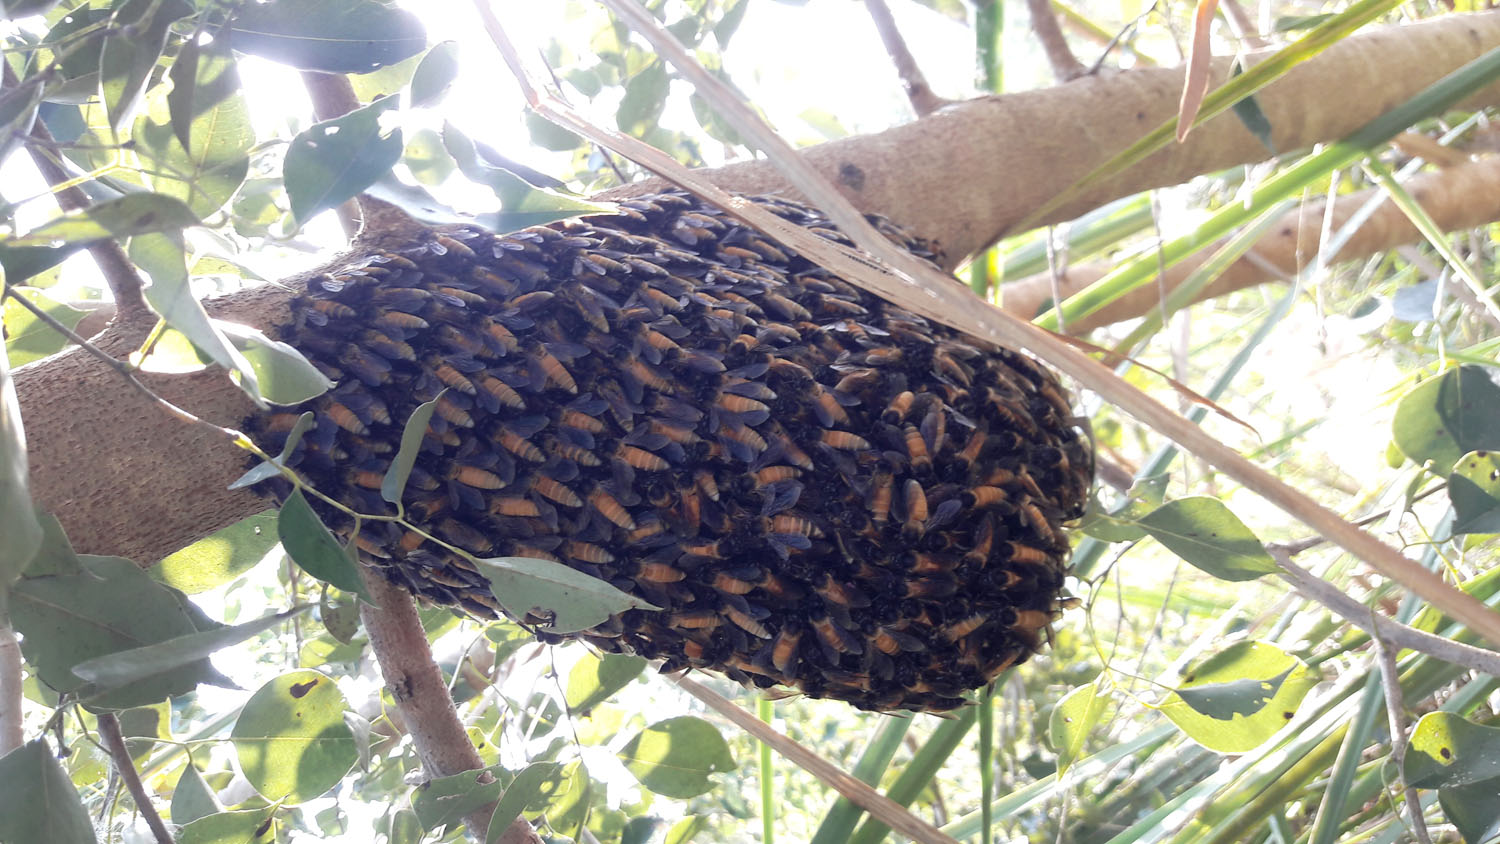 A swarm of wild honey bees of the species Apis dorsata also known as King of honey bees spotted at a forest in Chure region, in Kanchanpur district, on Monday, October 22, 2018. Photo: RSS